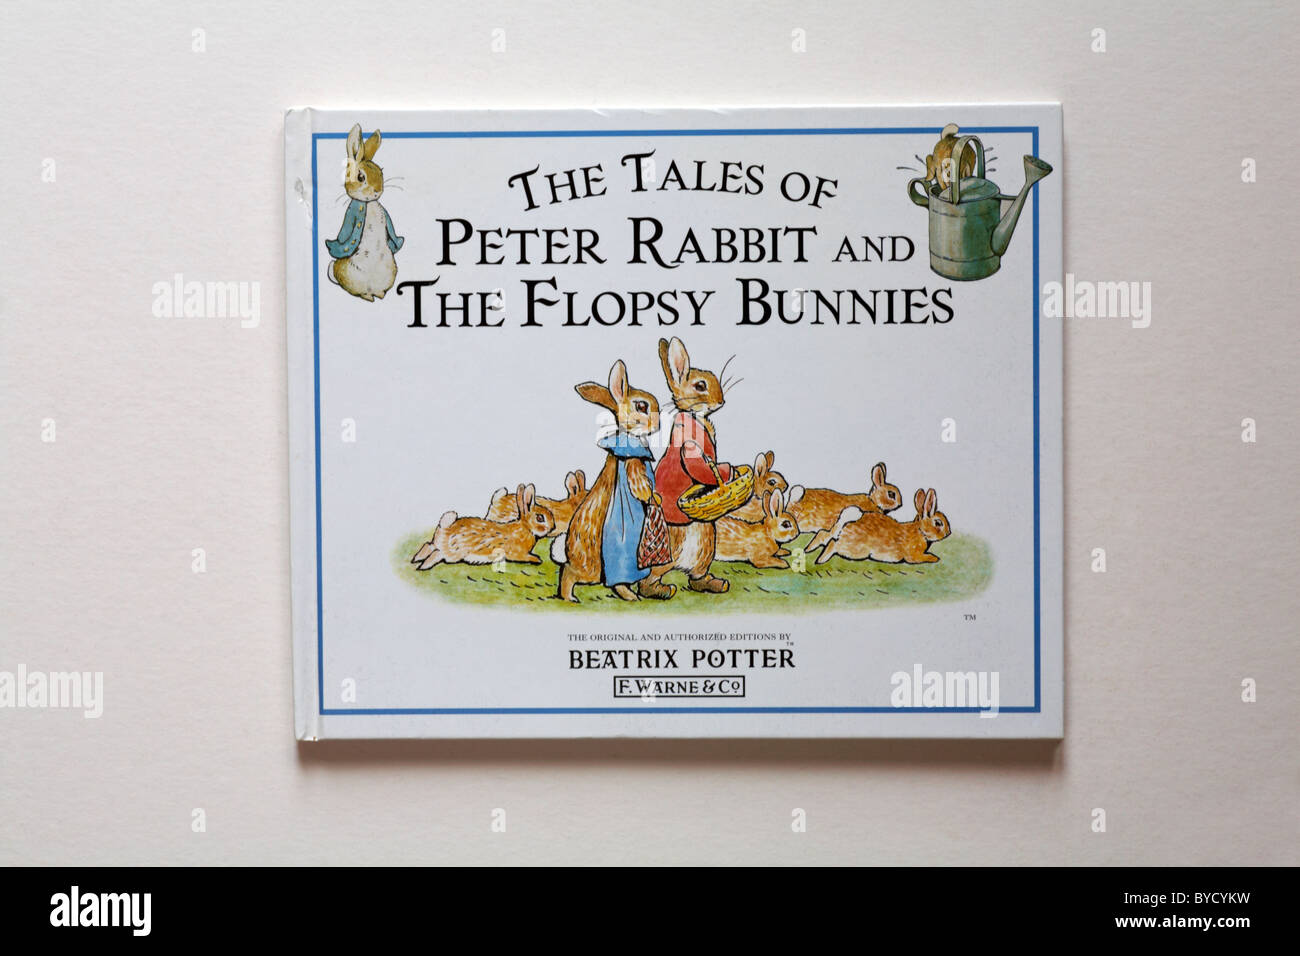 The tales of Peter Rabbit and the Flopsy Bunnies hardback book by Beatrix Potter isolated on white background - Stock Image